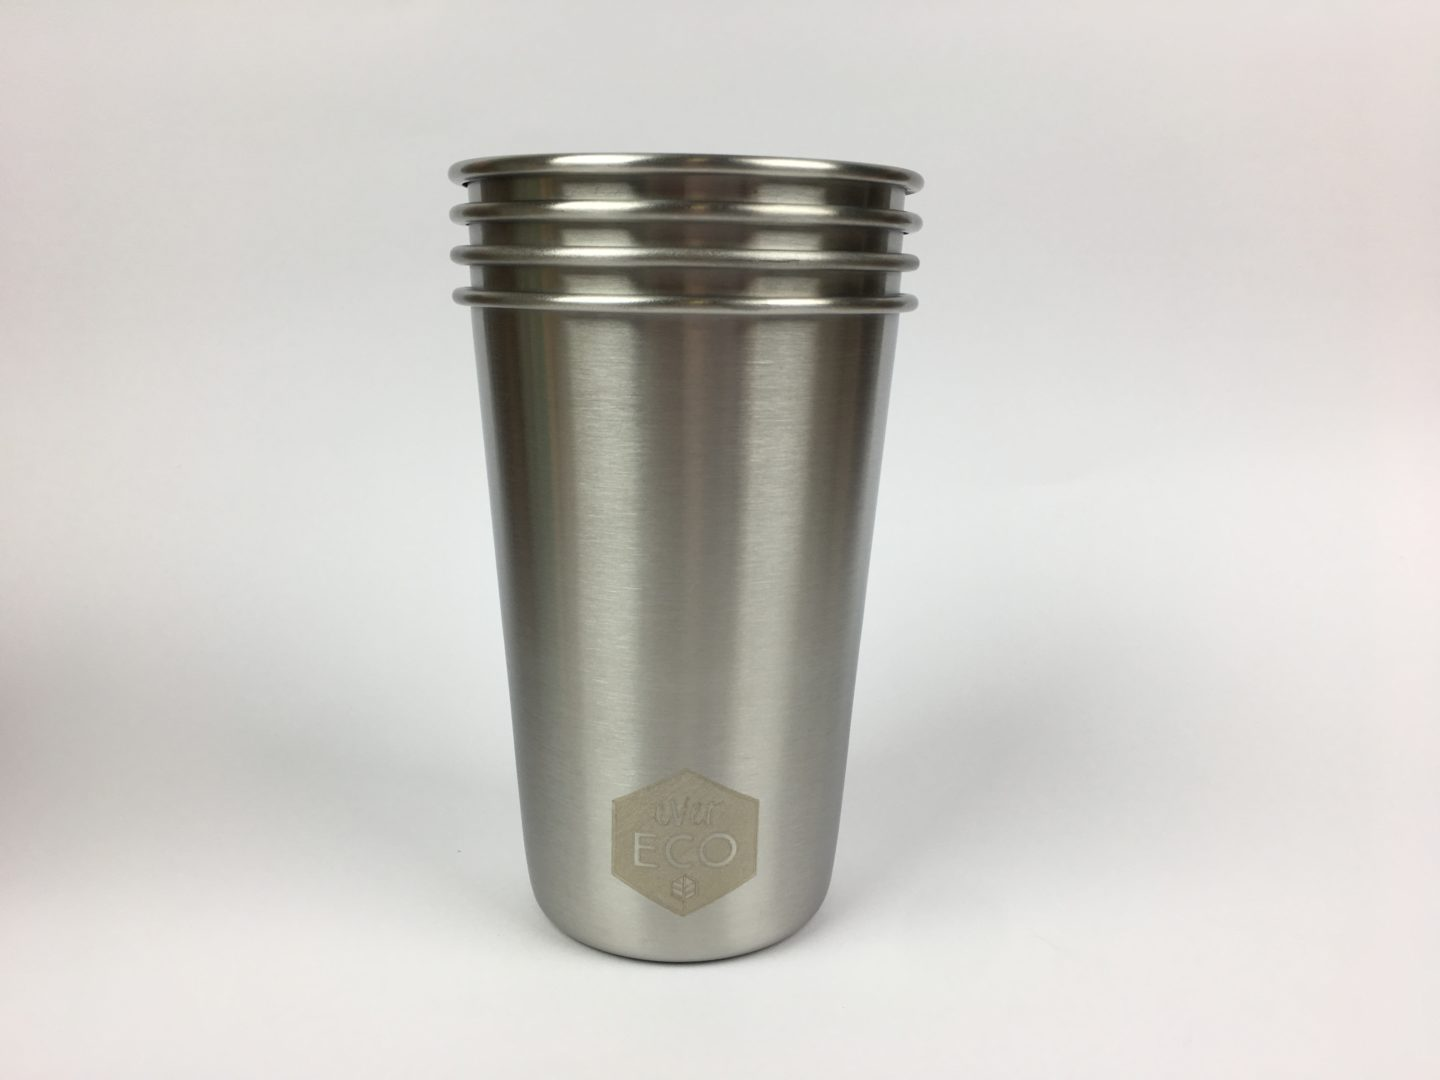 Ever Eco Stainless steel drinking cups 500ml x 4 - Plastic Free Living